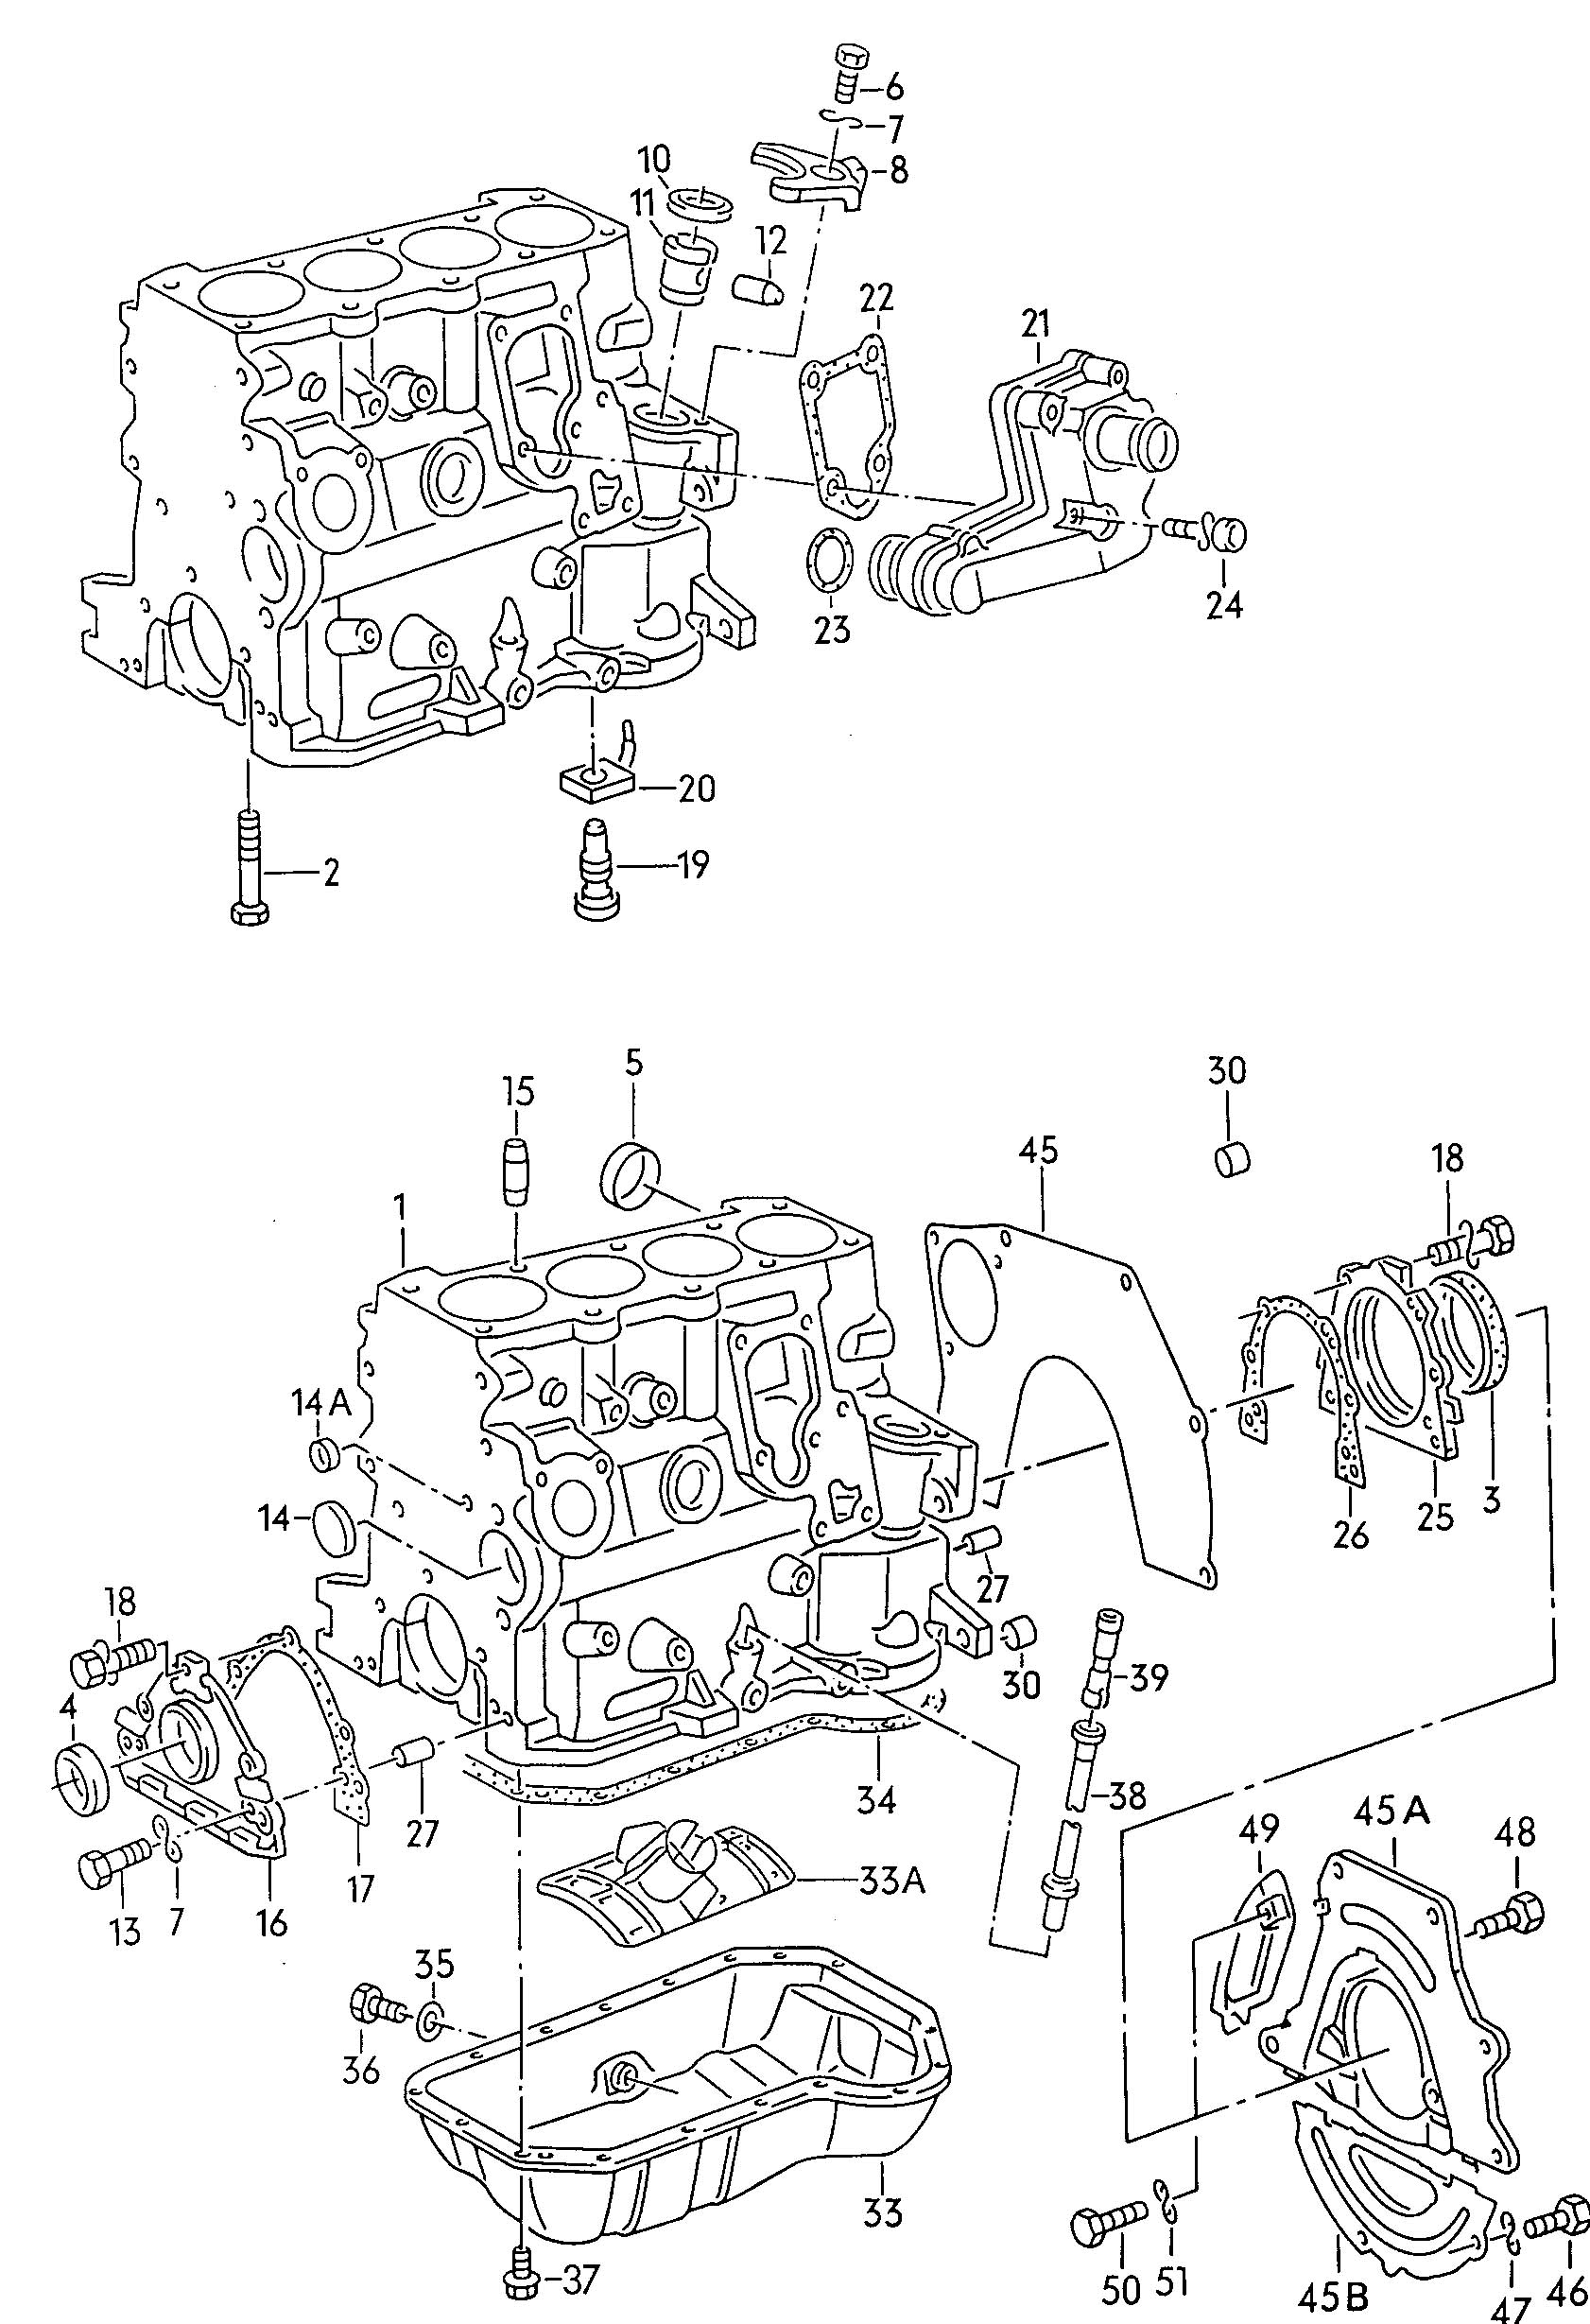 Vw Vr6 Engine Diagram Great Design Of Wiring 1999 Volkswagen Jetta 98 Within And 2001